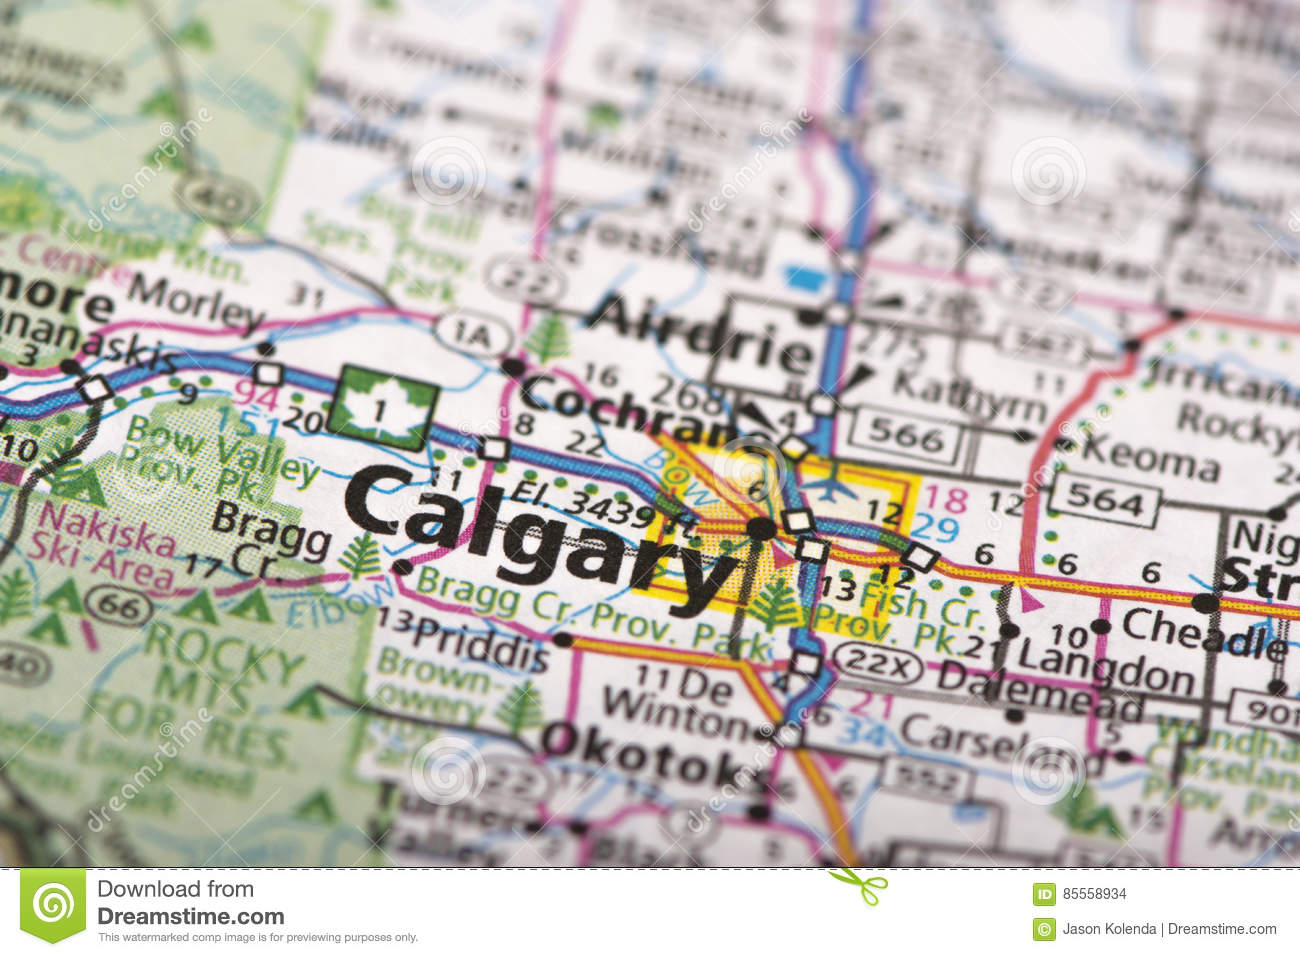 Calgary Canada On Map Stock Photo Image Of Metropolitan 85558934